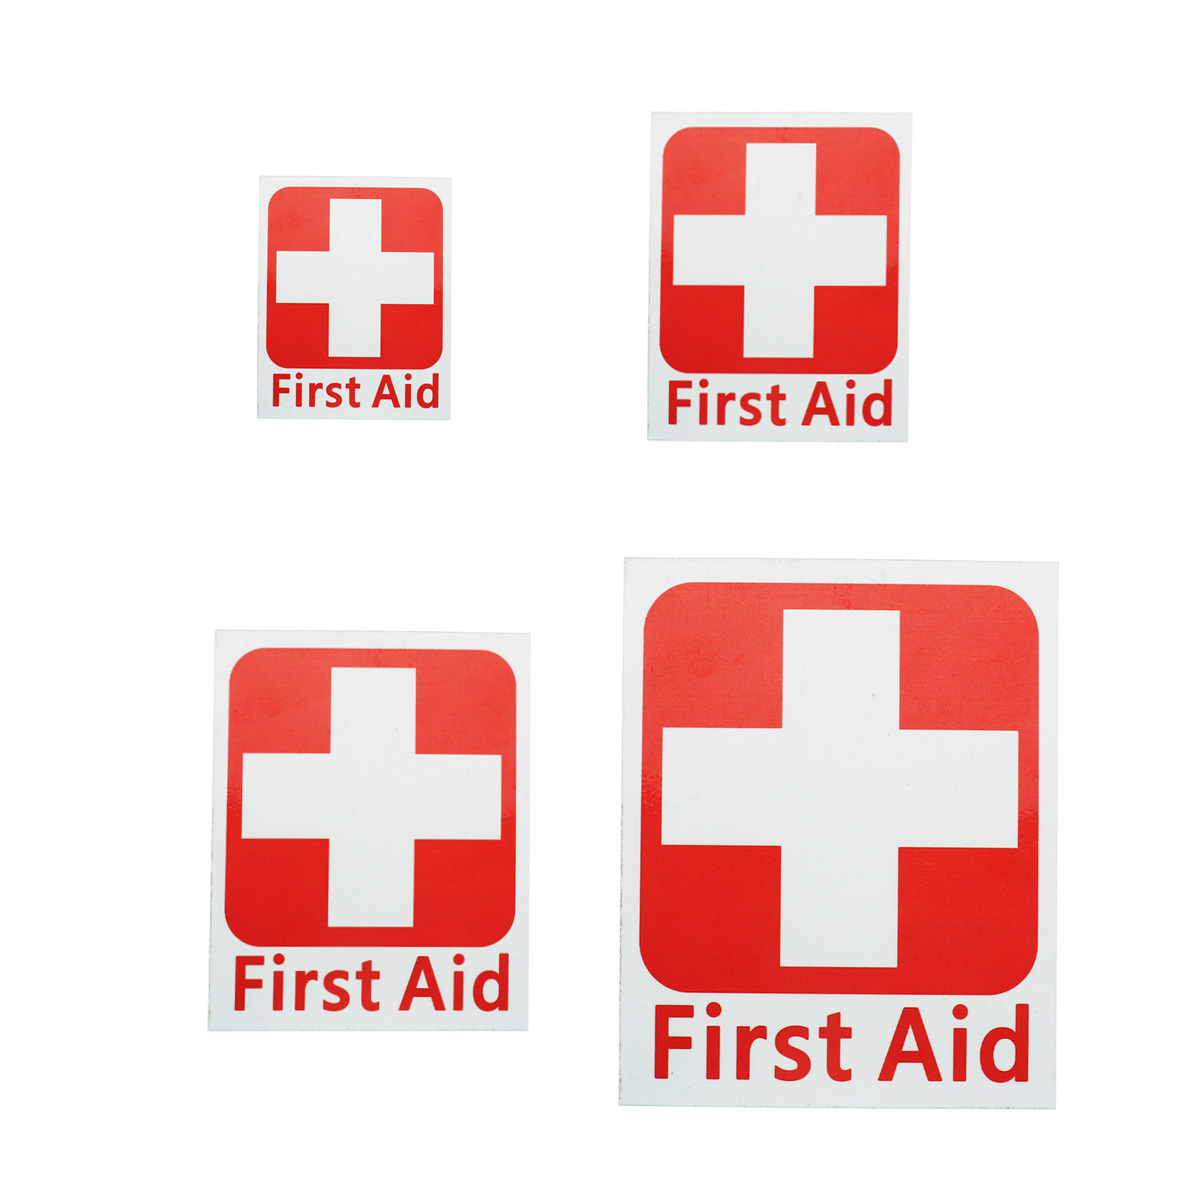 NEW 4 Size FIRST AID Vinyl Sticker Label Waterproof Signs Red Cross Health Safety Emergency Kits Warning signs page 4